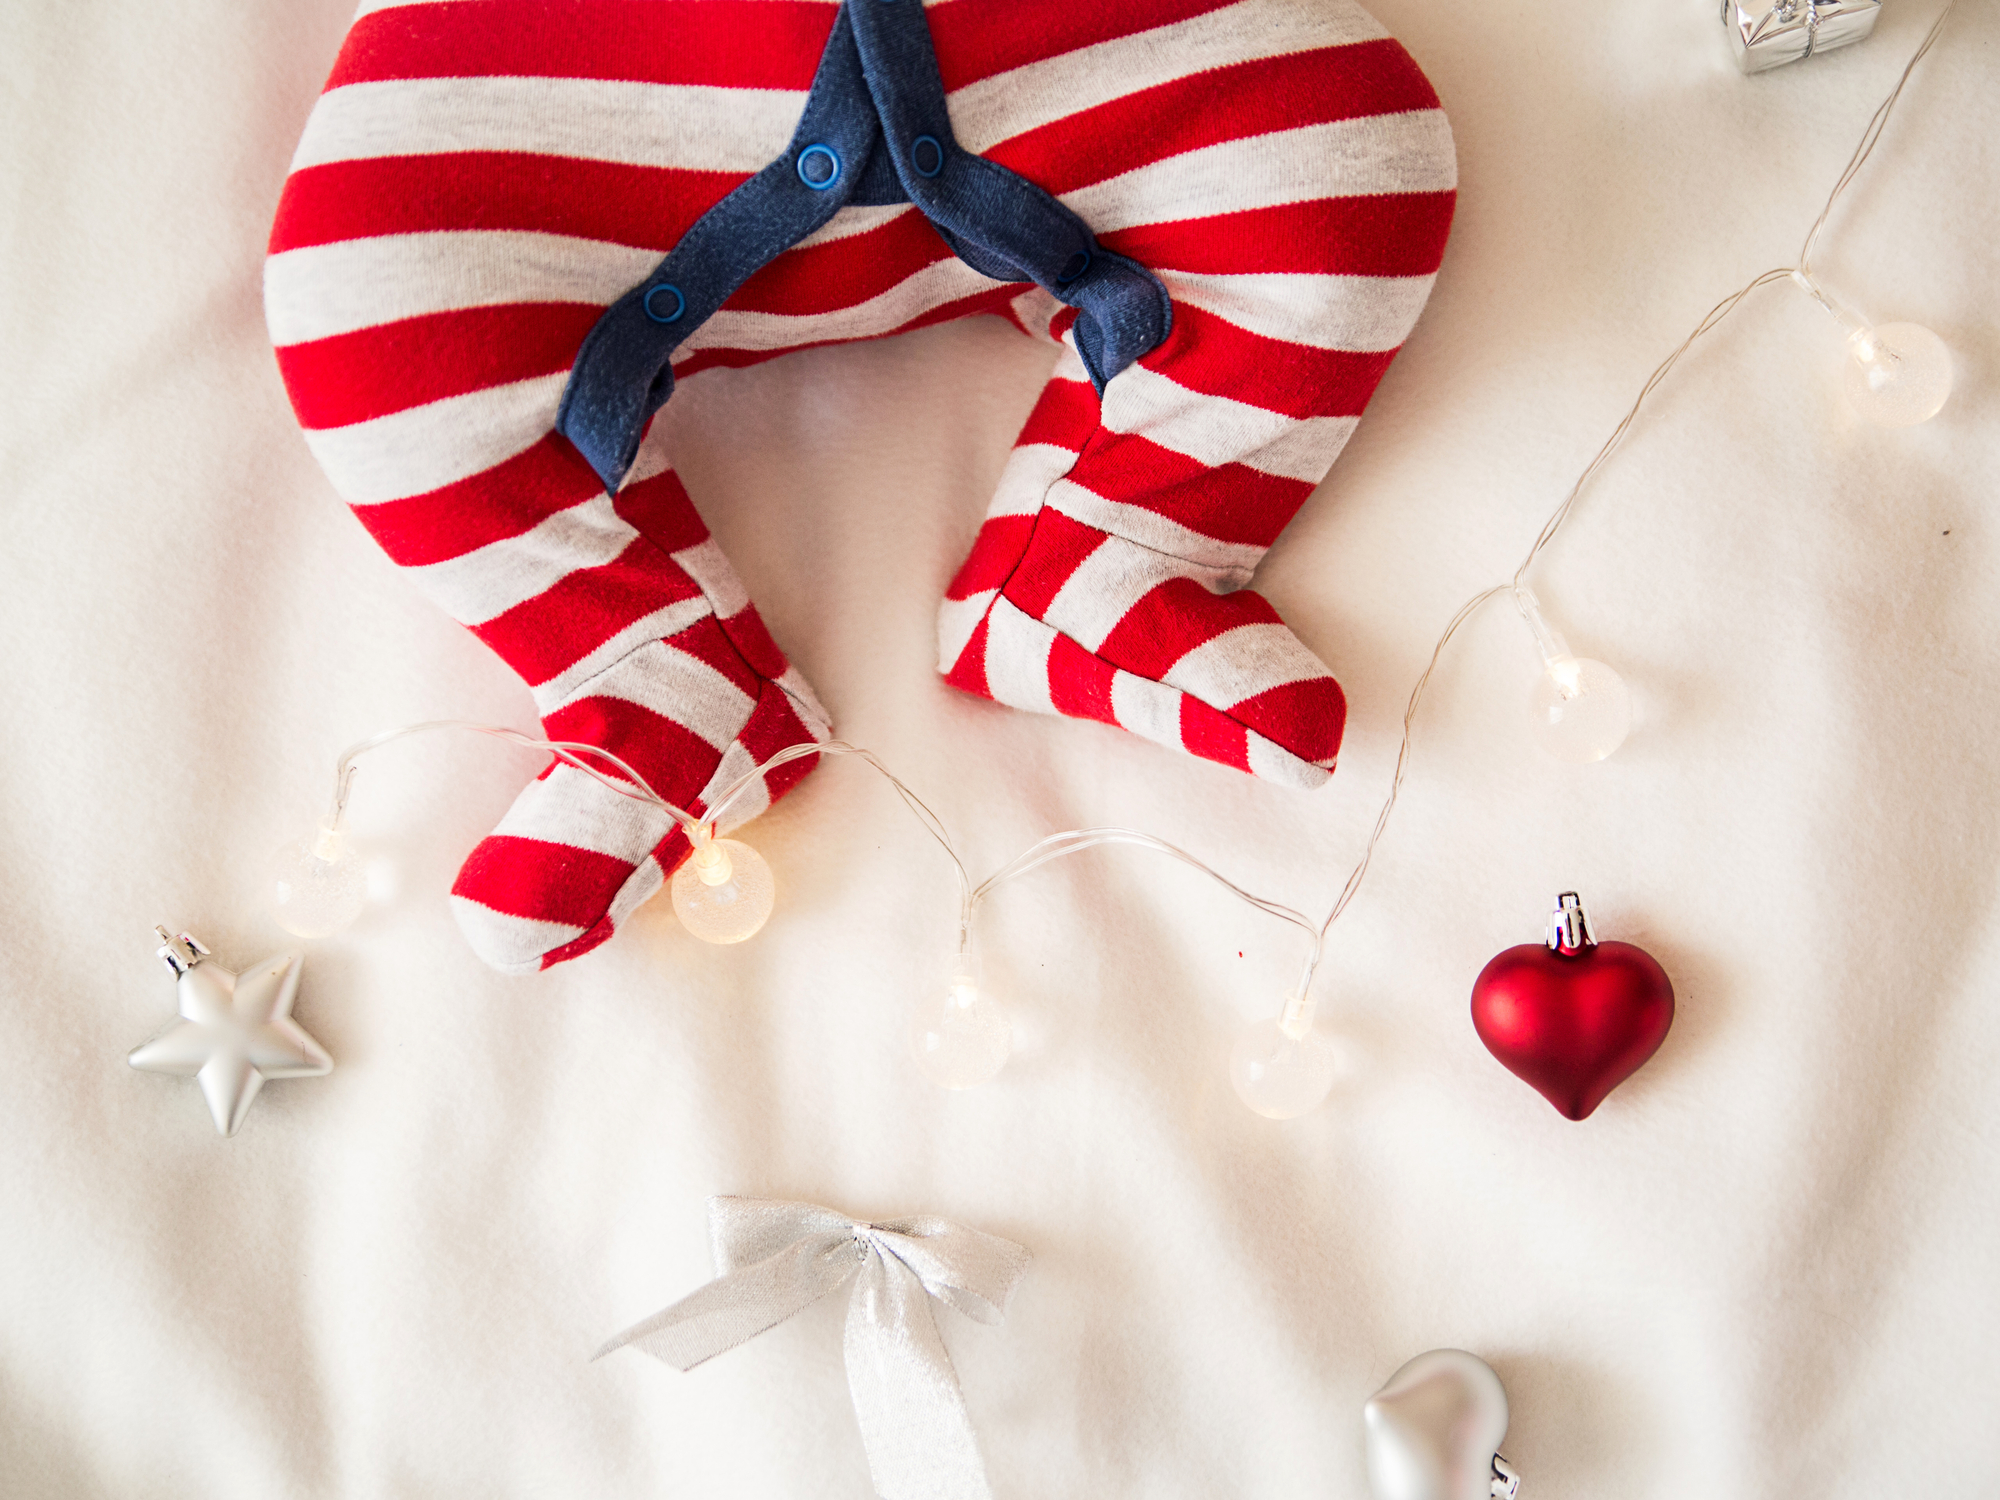 A baby in a red and white striped onesie with it's feet next to some Christmas lights and baubles